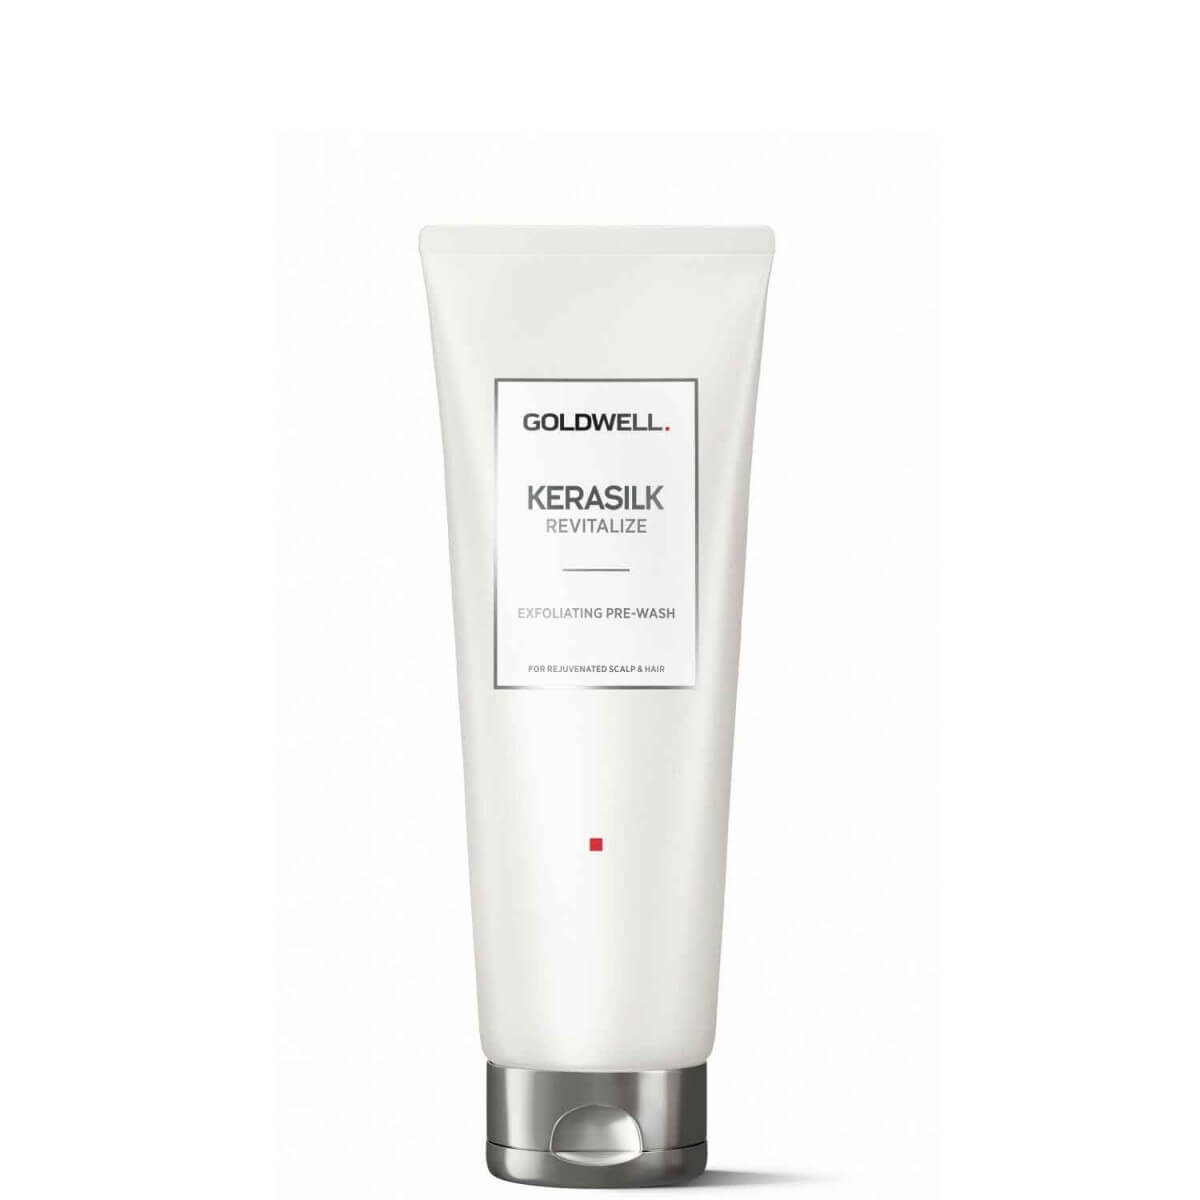 Goldwell Kerasilk Premium Revitalize Exfoliating Pre-Wash